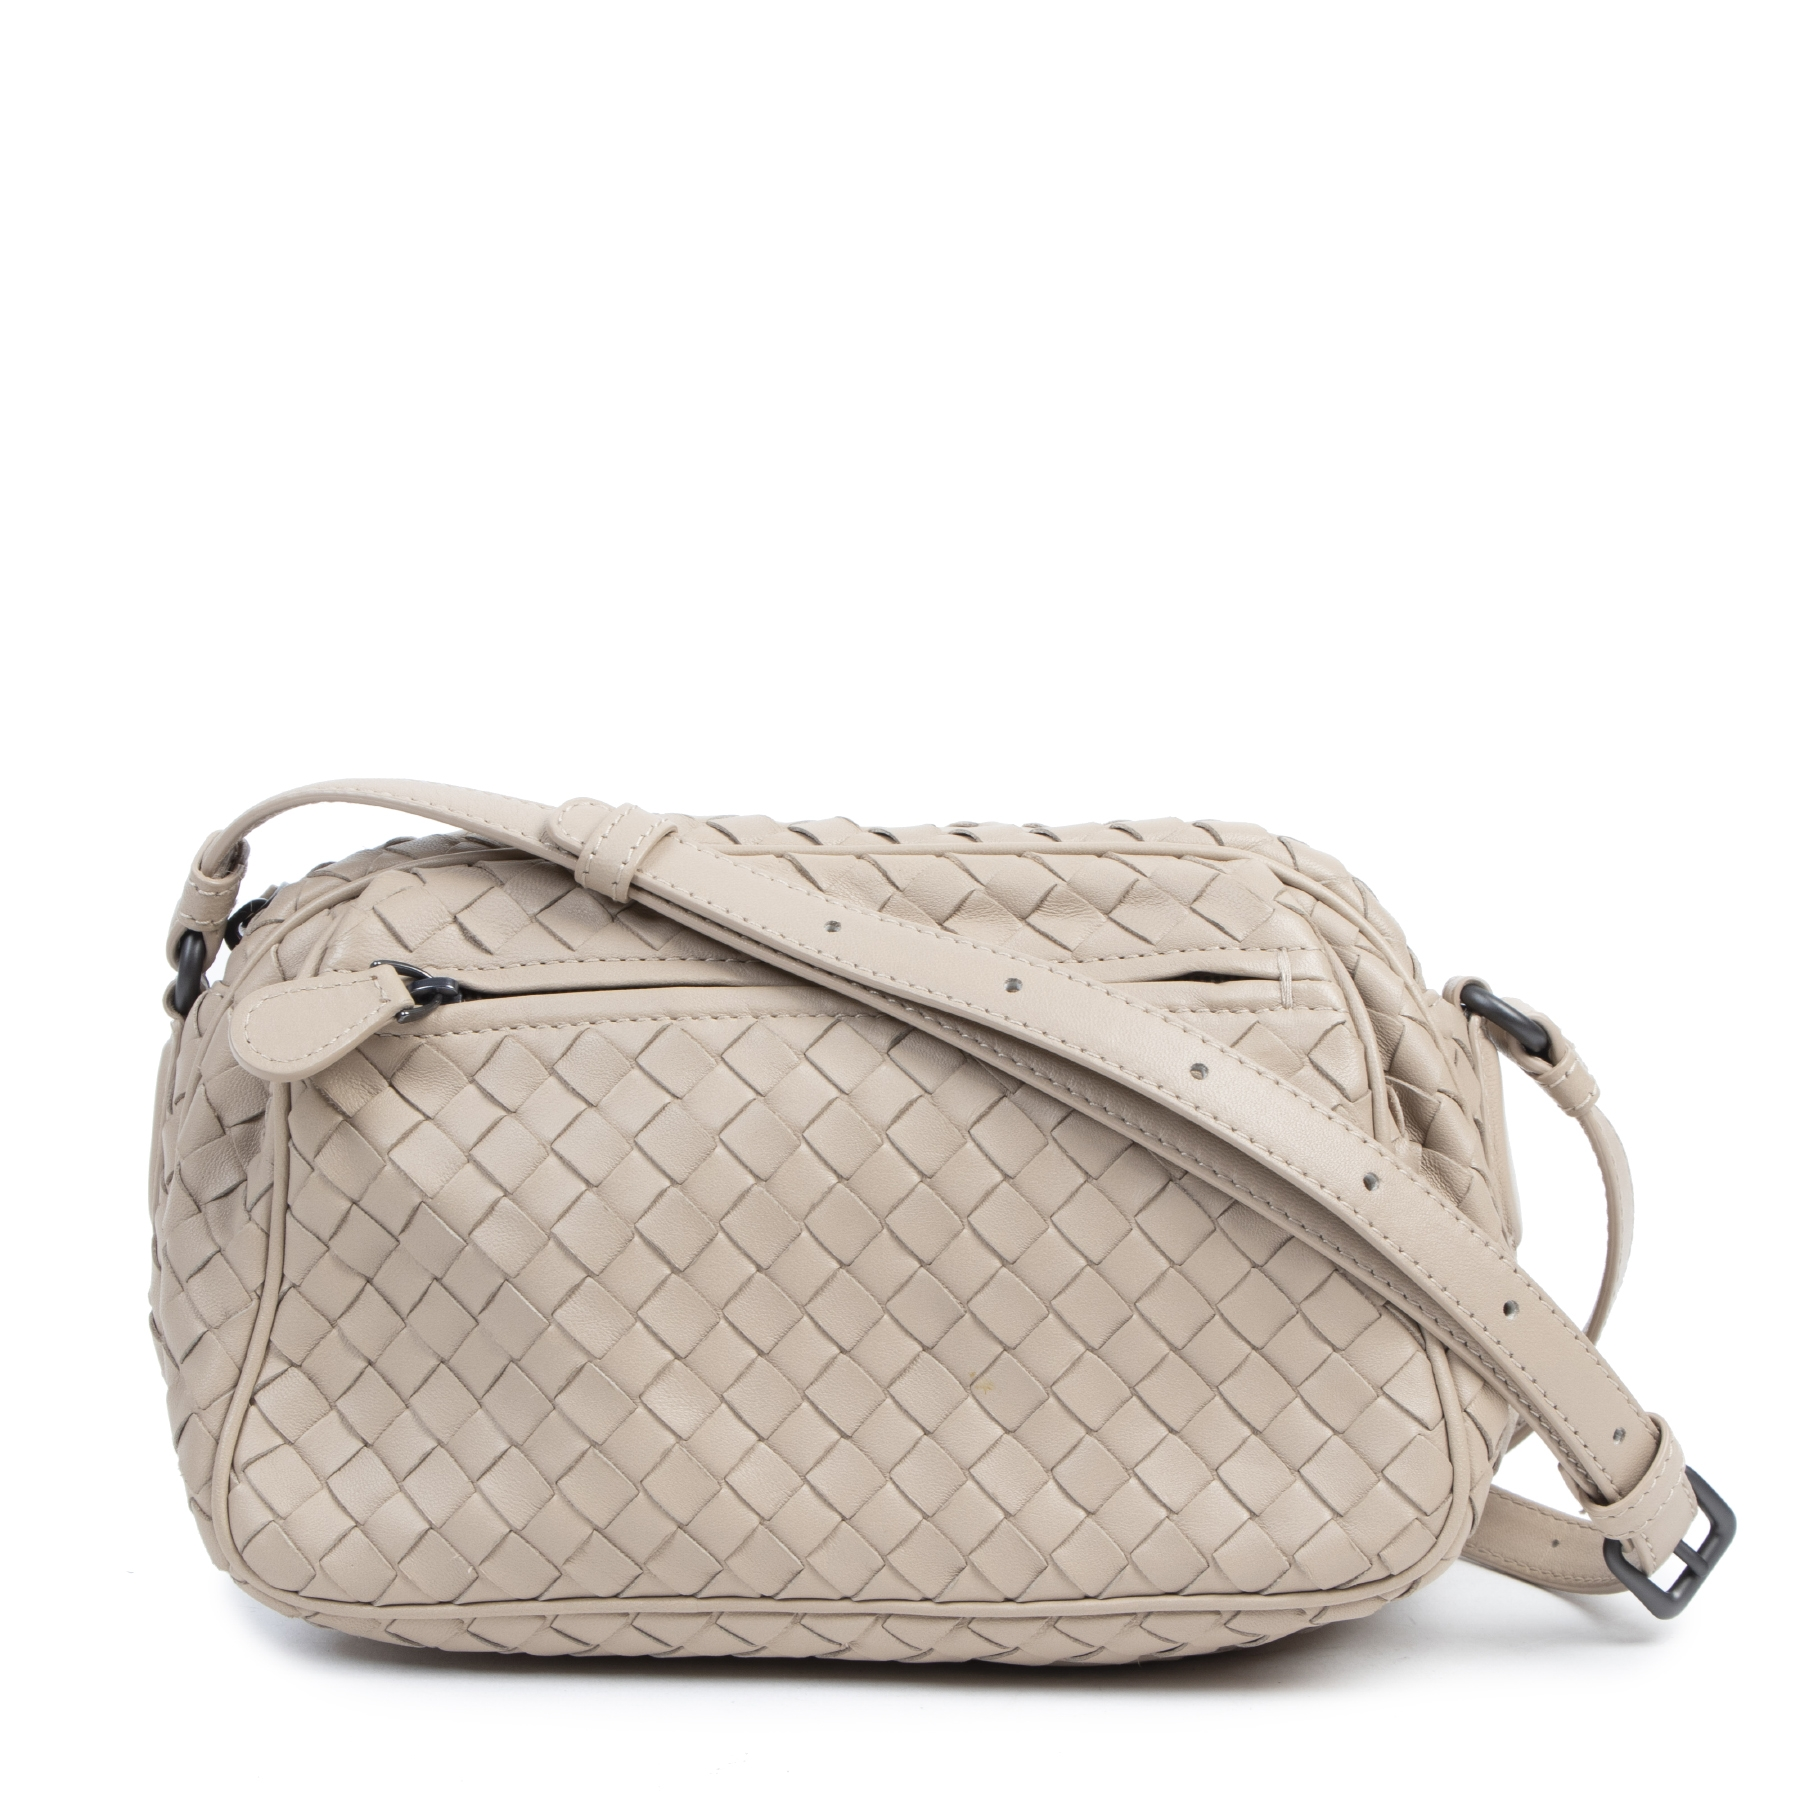 Authentic secondhand Bottega Veneta Blush Intrecciato Woven Leather Camera Bag designer bags fashion luxury vintage webshop high end brands